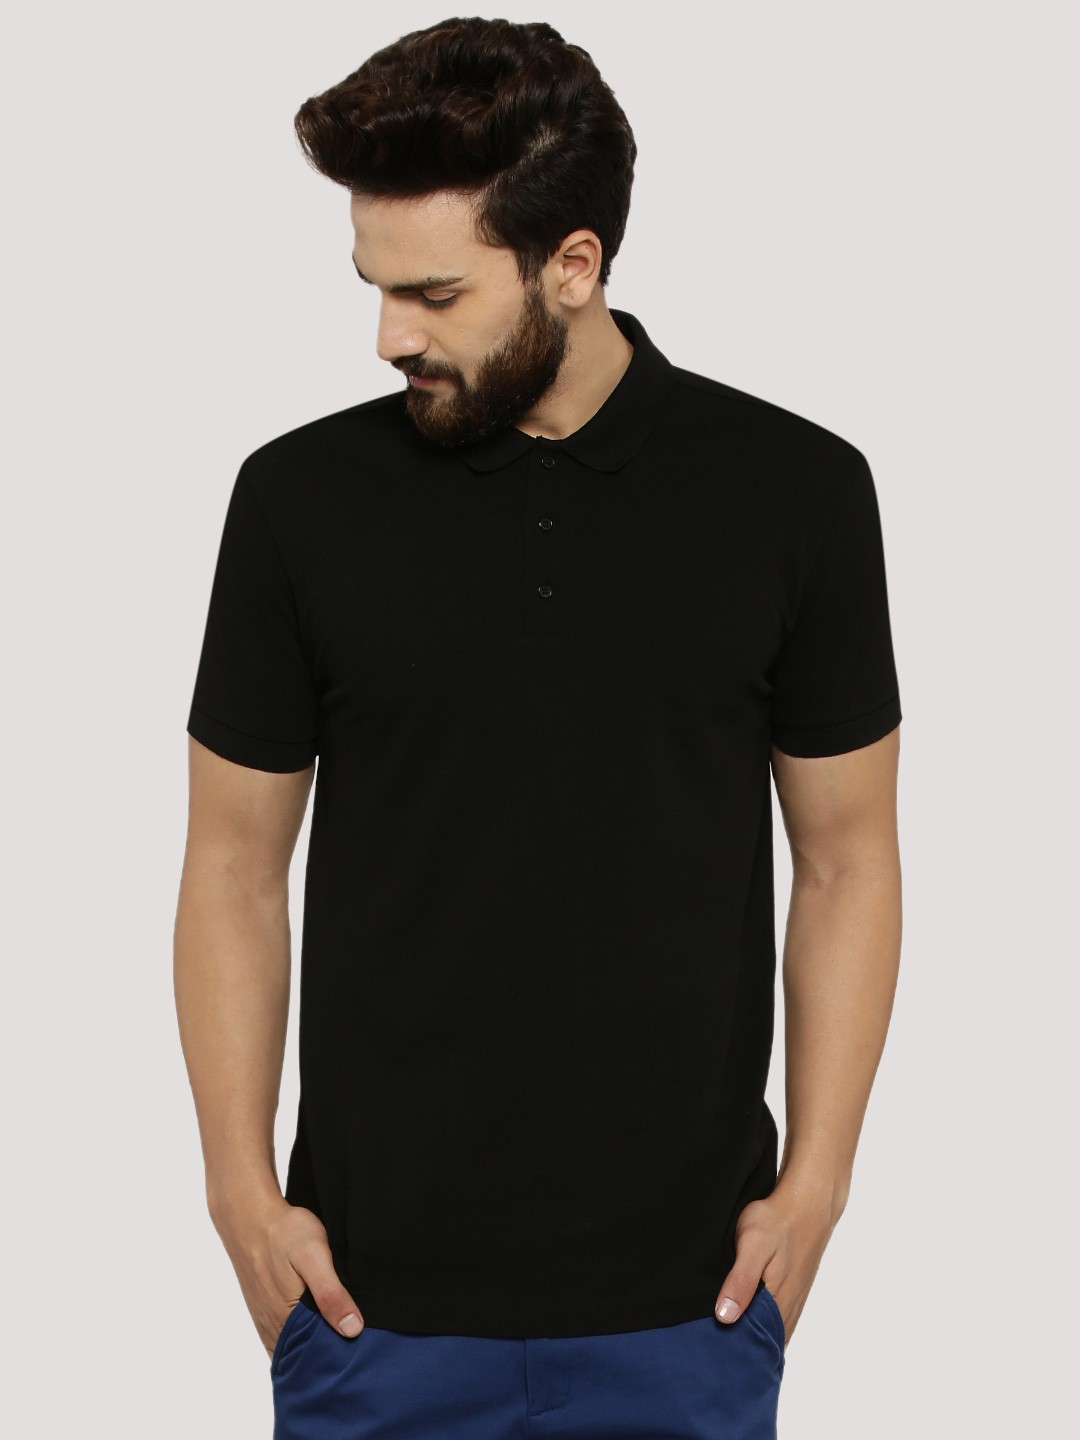 Buy koovs pique button down polo shirt for men men 39 s for Where to buy button down shirts